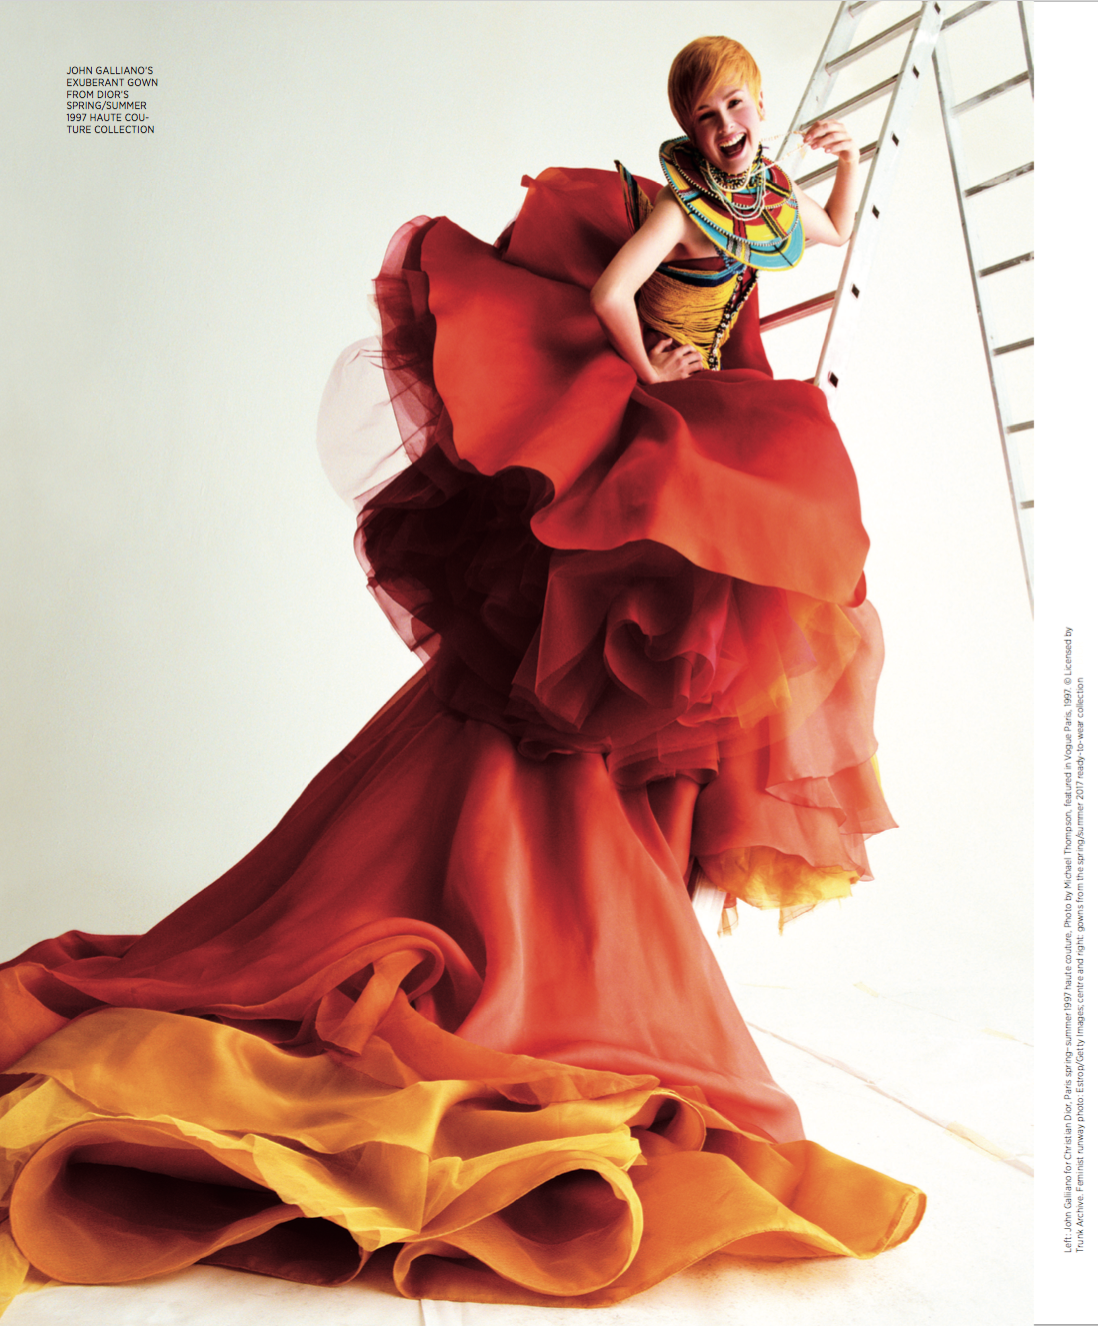 Dior by Leah Van Loon for S Magazine Page 3